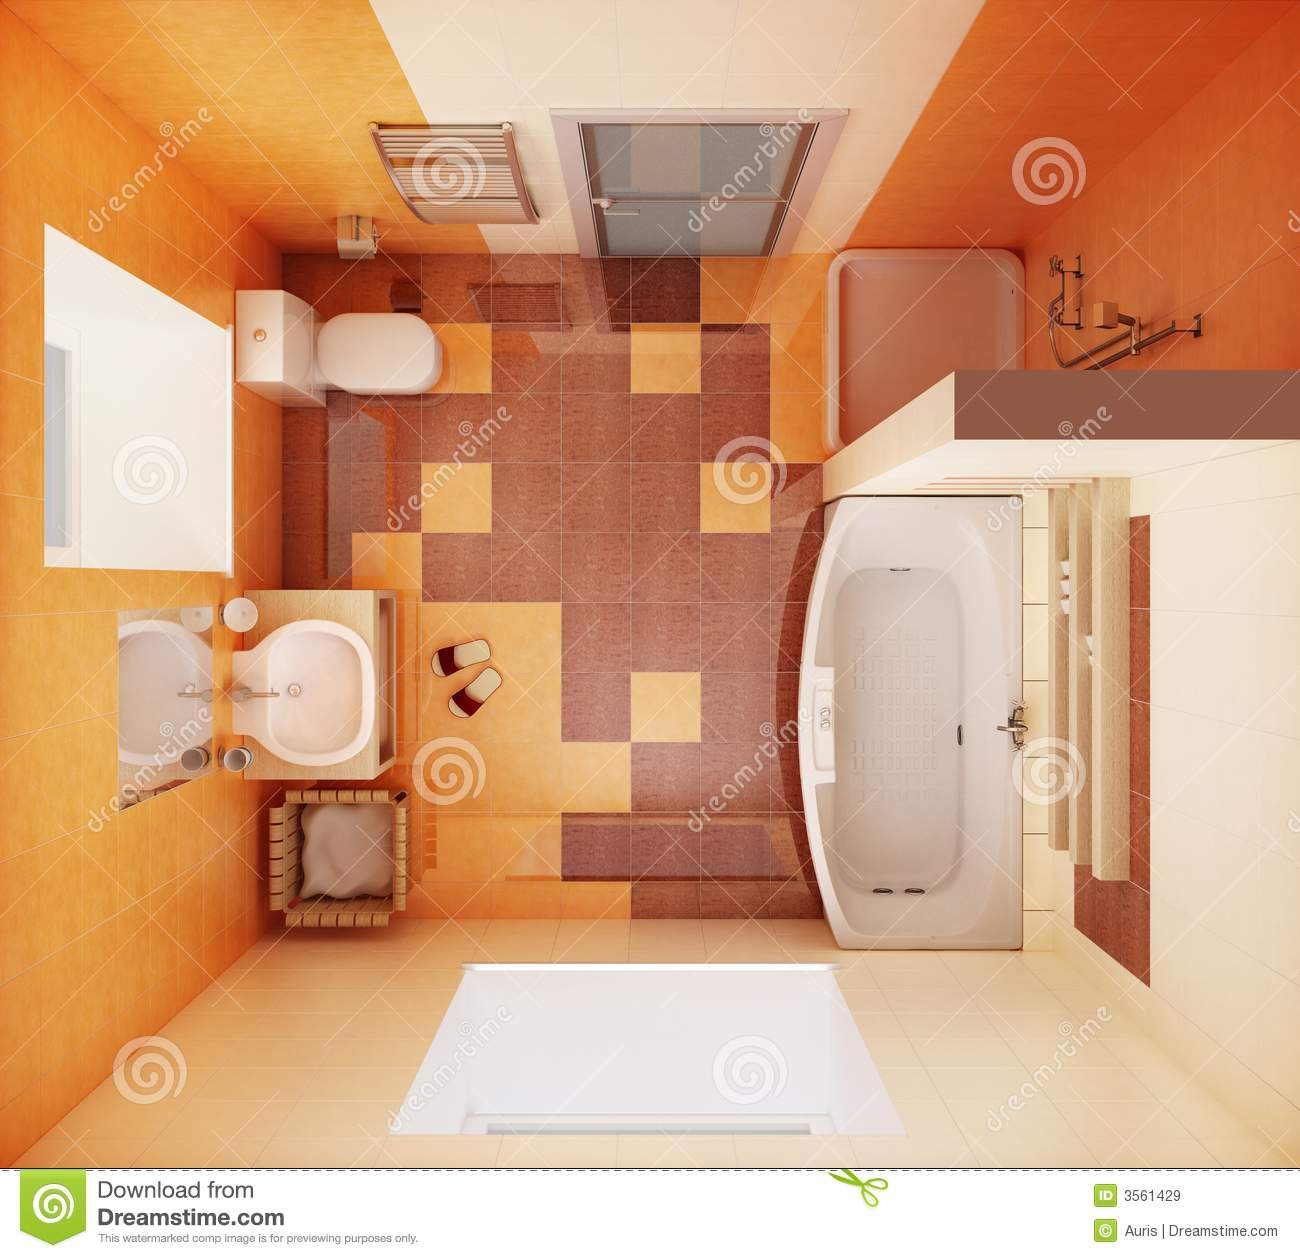 Vue Bathroom Accessories: Top View Of The Bathroom Royalty Free Stock Images